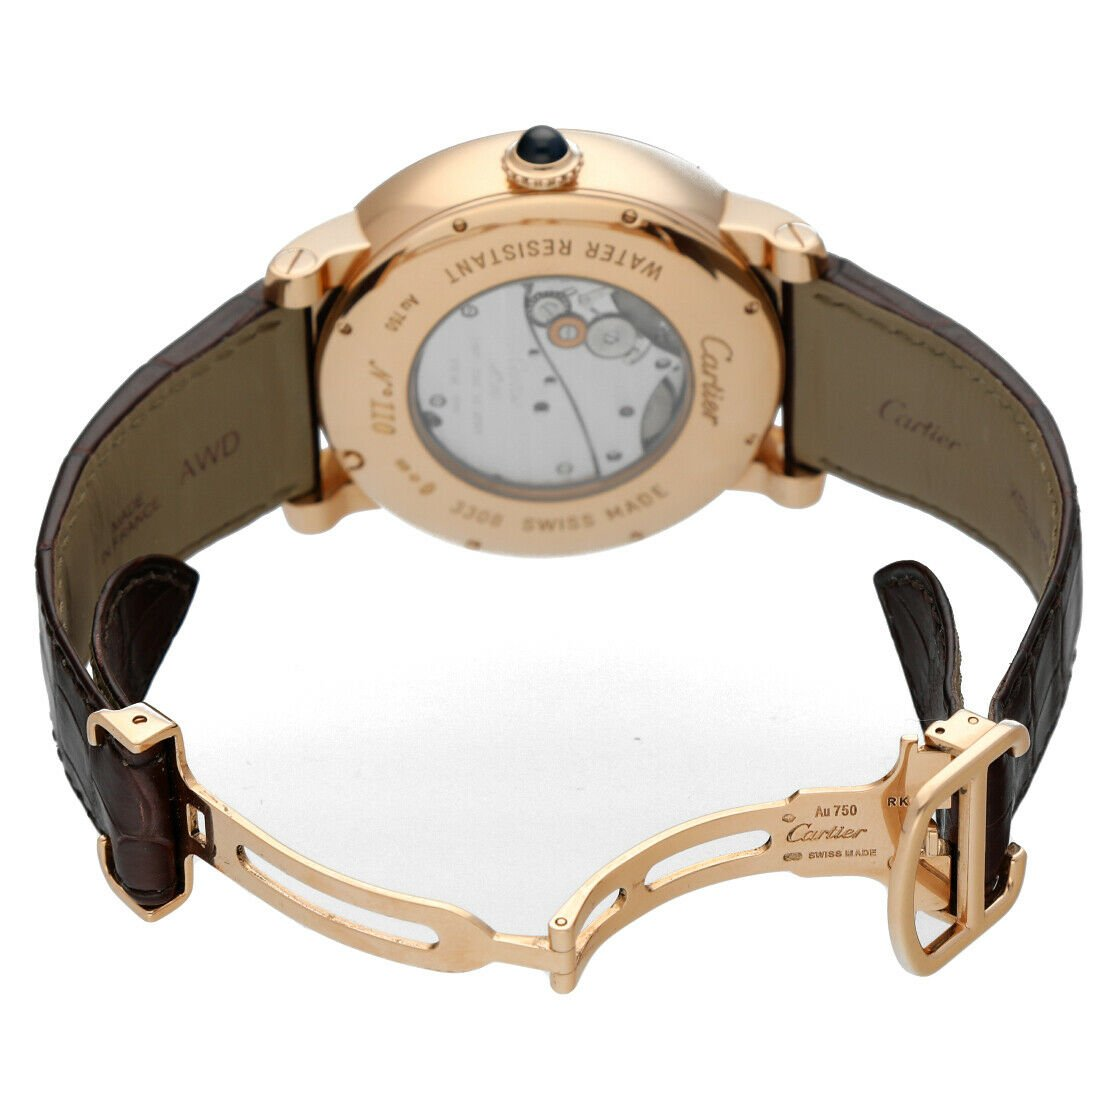 Cartier 3308 W1556205 Rotonde Astrotourbillon 18k Rose Gold Limited Mens Watch 124243384081 6